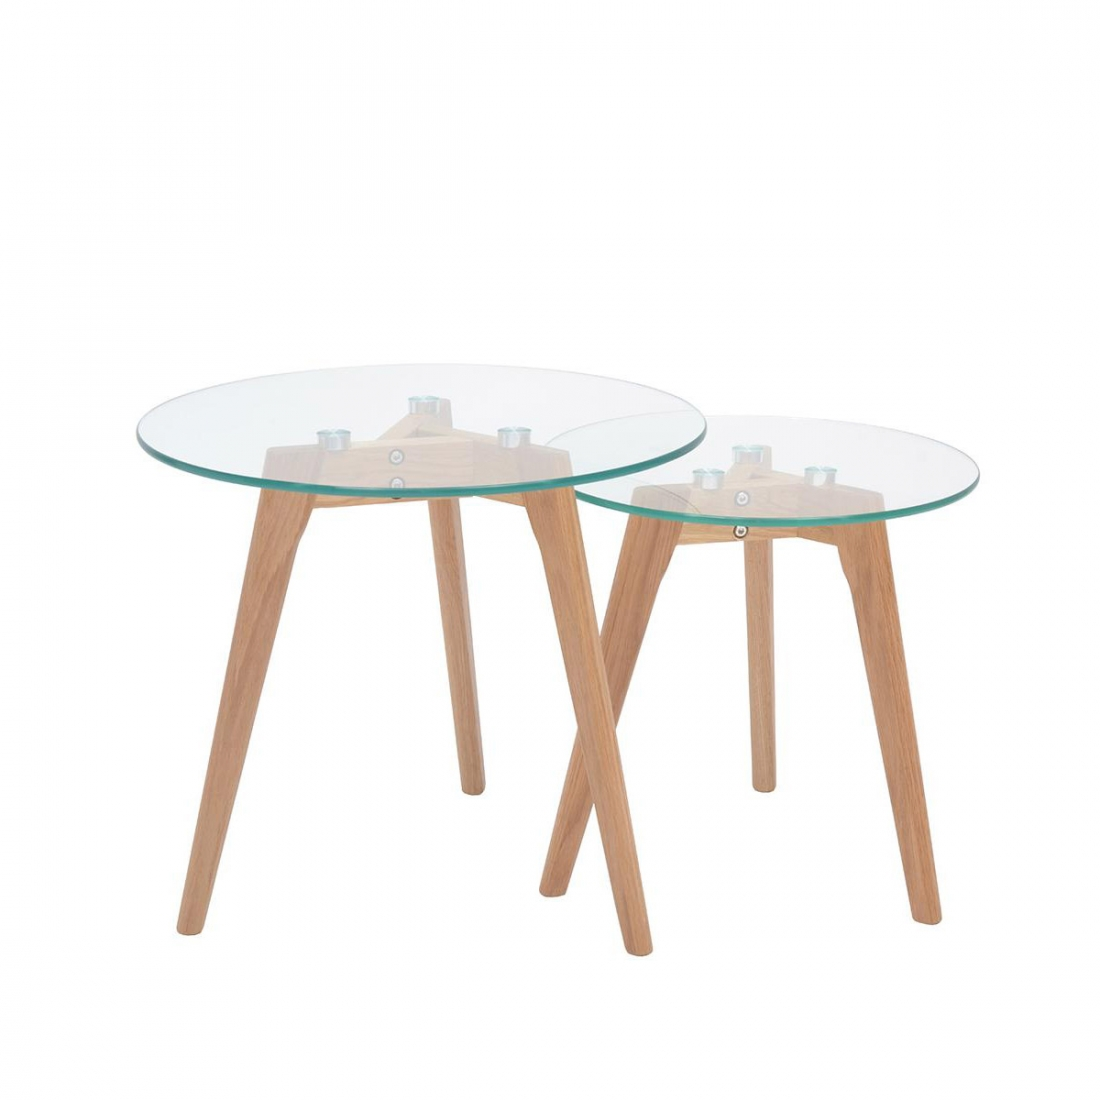 Table basse verre design avec plateau en verre zendart for Table haute en verre